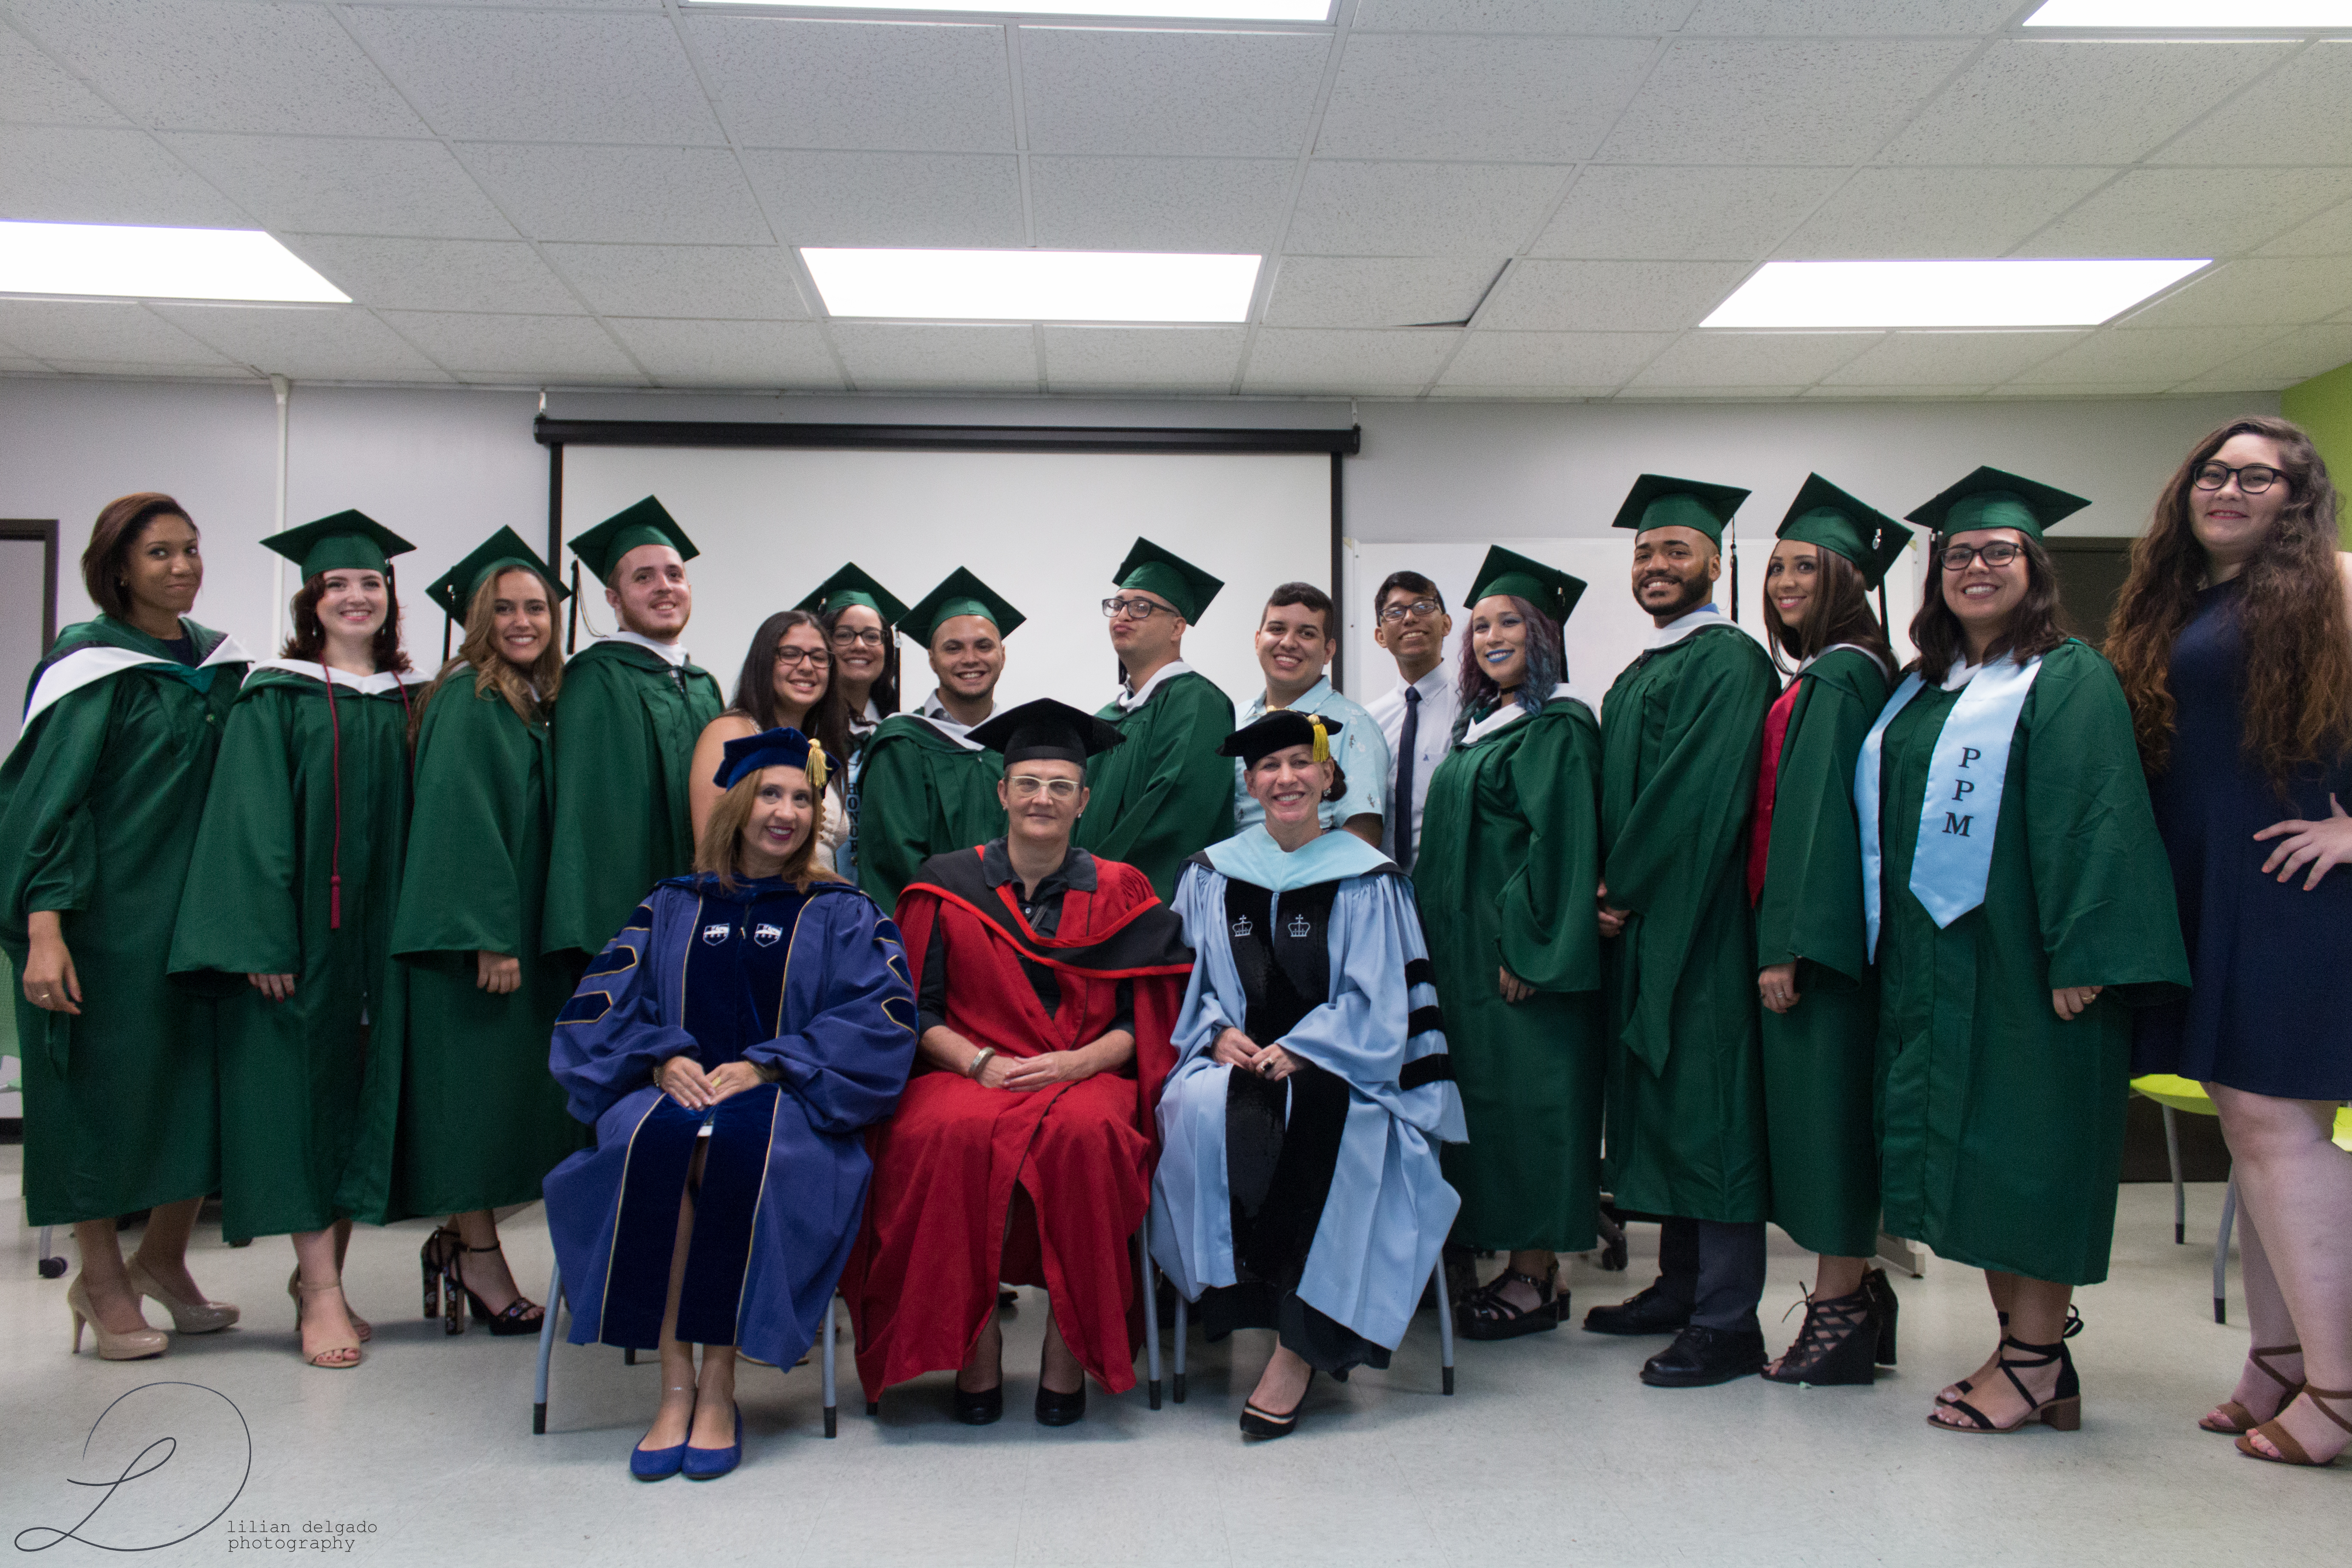 Graduate students and doctors of the English department.